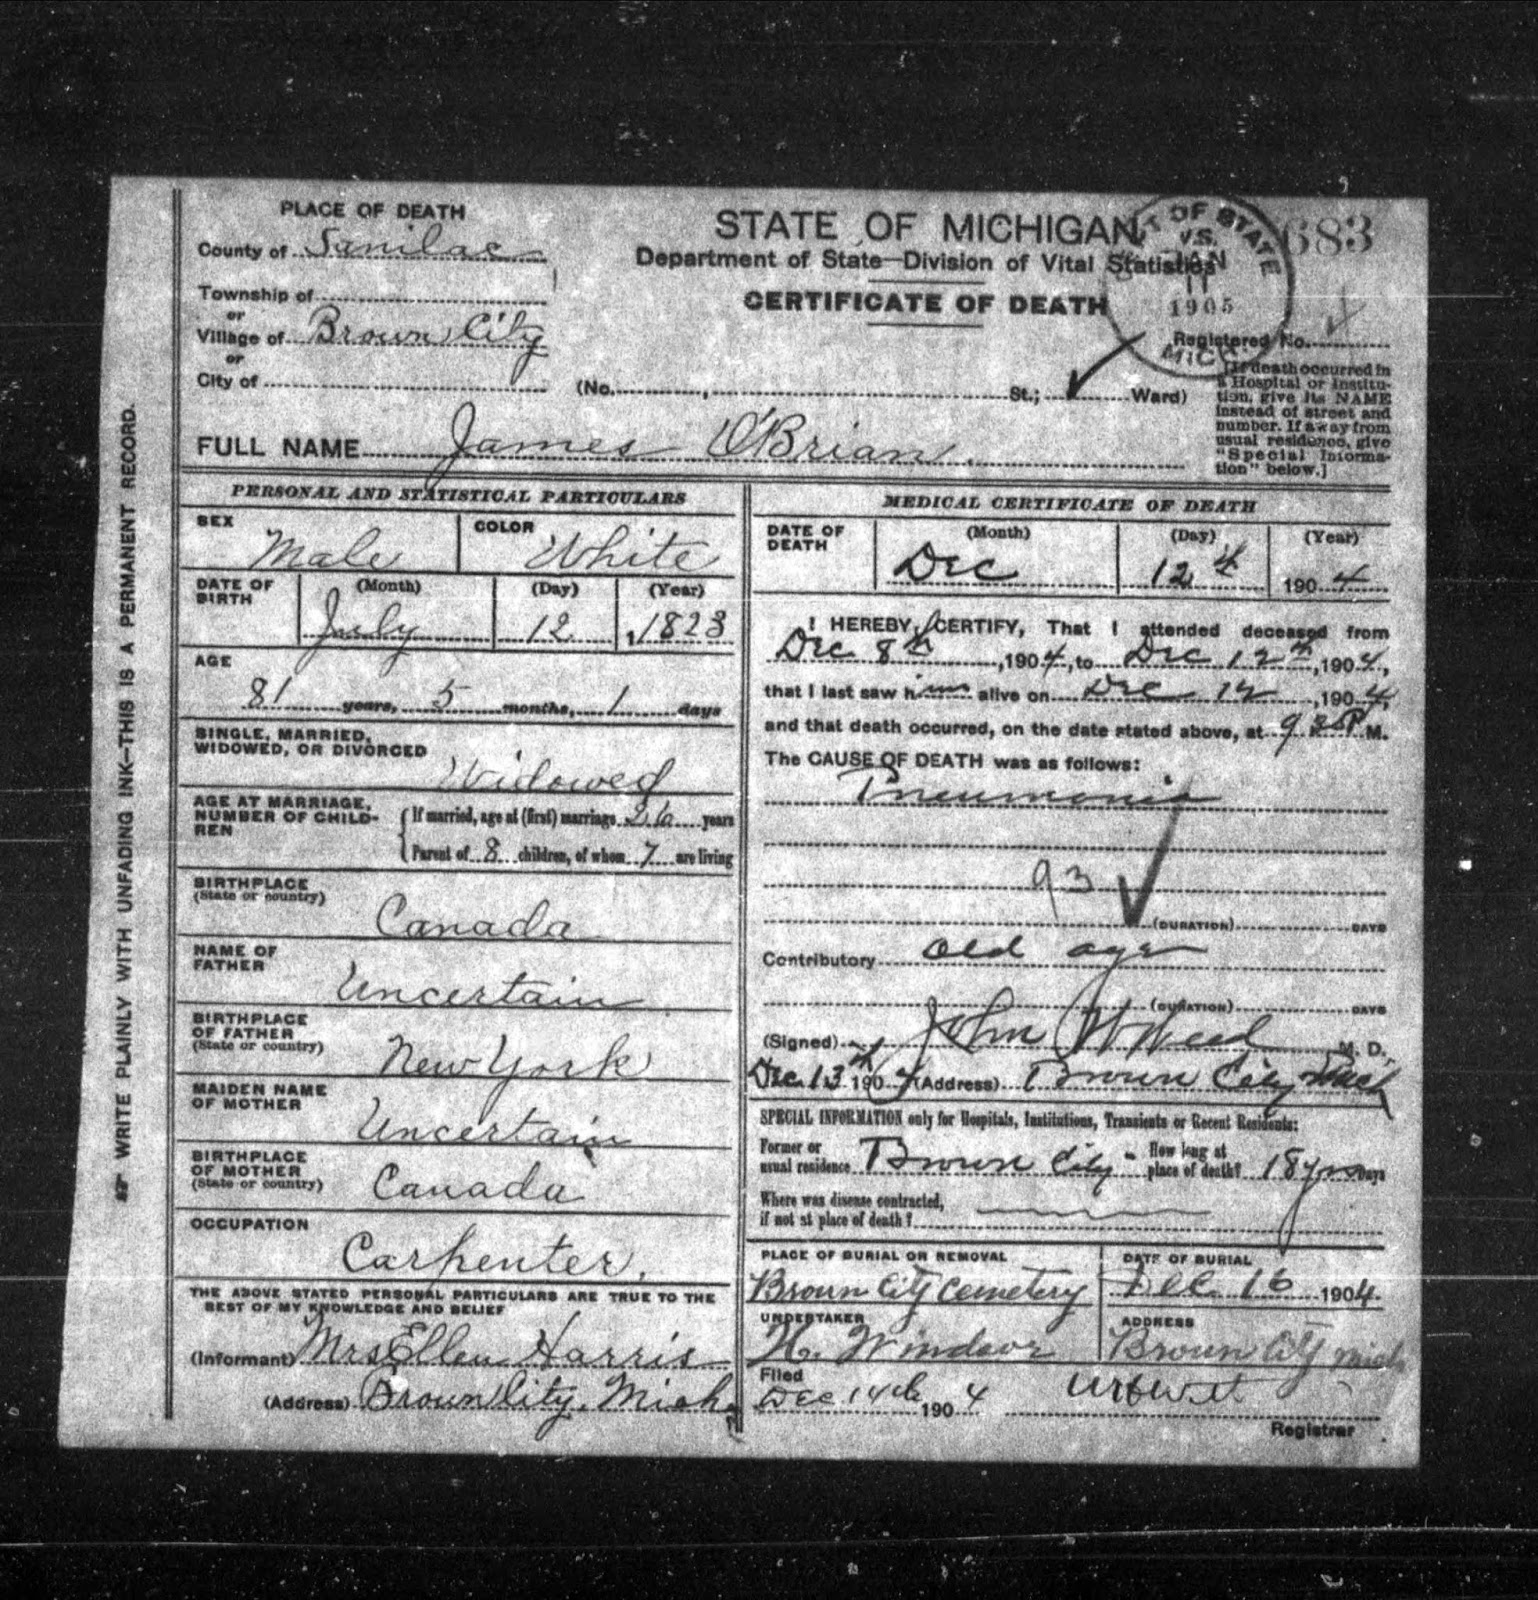 Climbing My Family Tree: Death Certificate: James O'Brian (December 12, 1904)